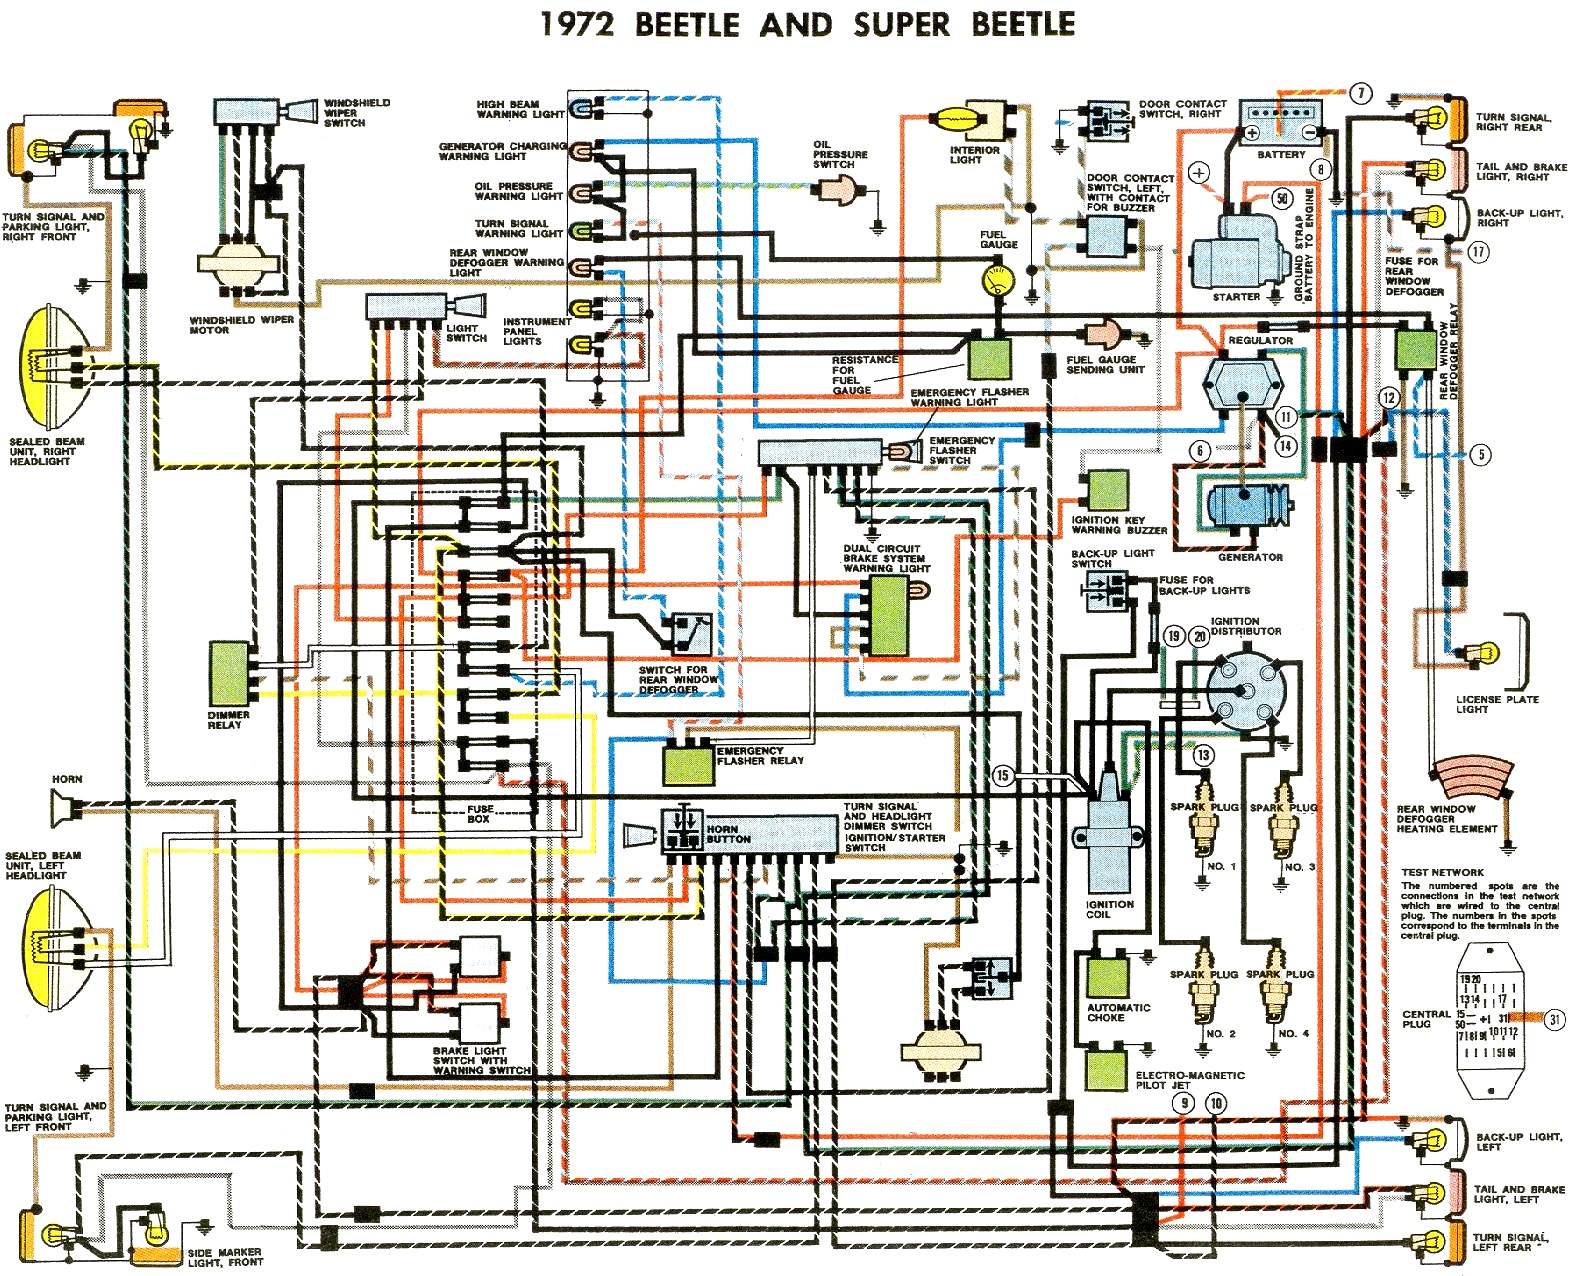 bug_72 1972 beetle wiring diagram thegoldenbug com 1978 vw bus fuse box diagram at cita.asia